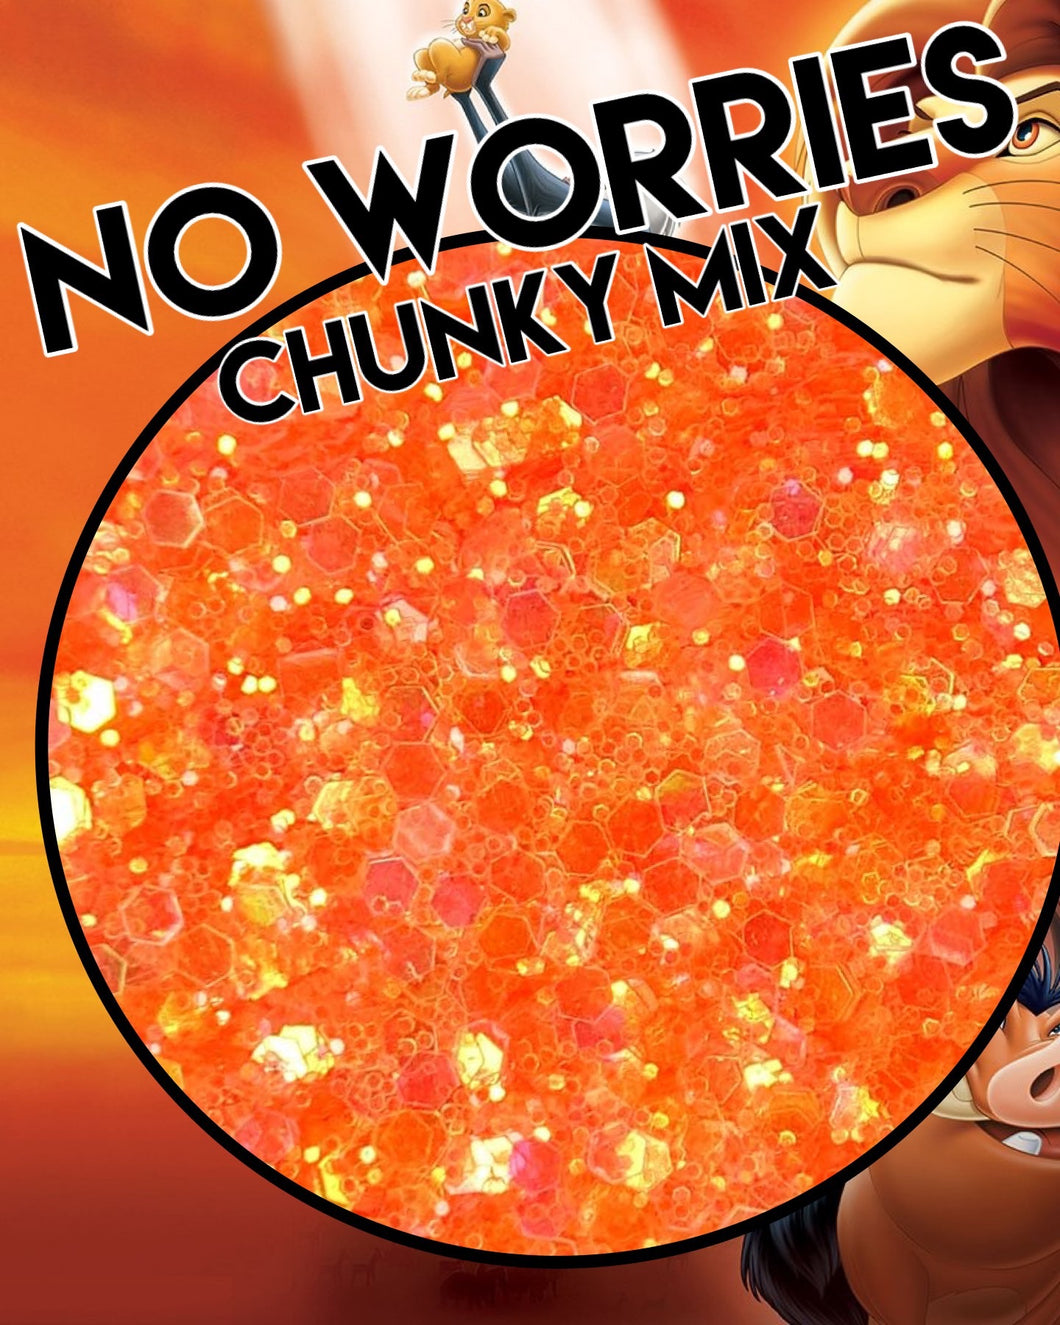 No Worries Chunky Mix